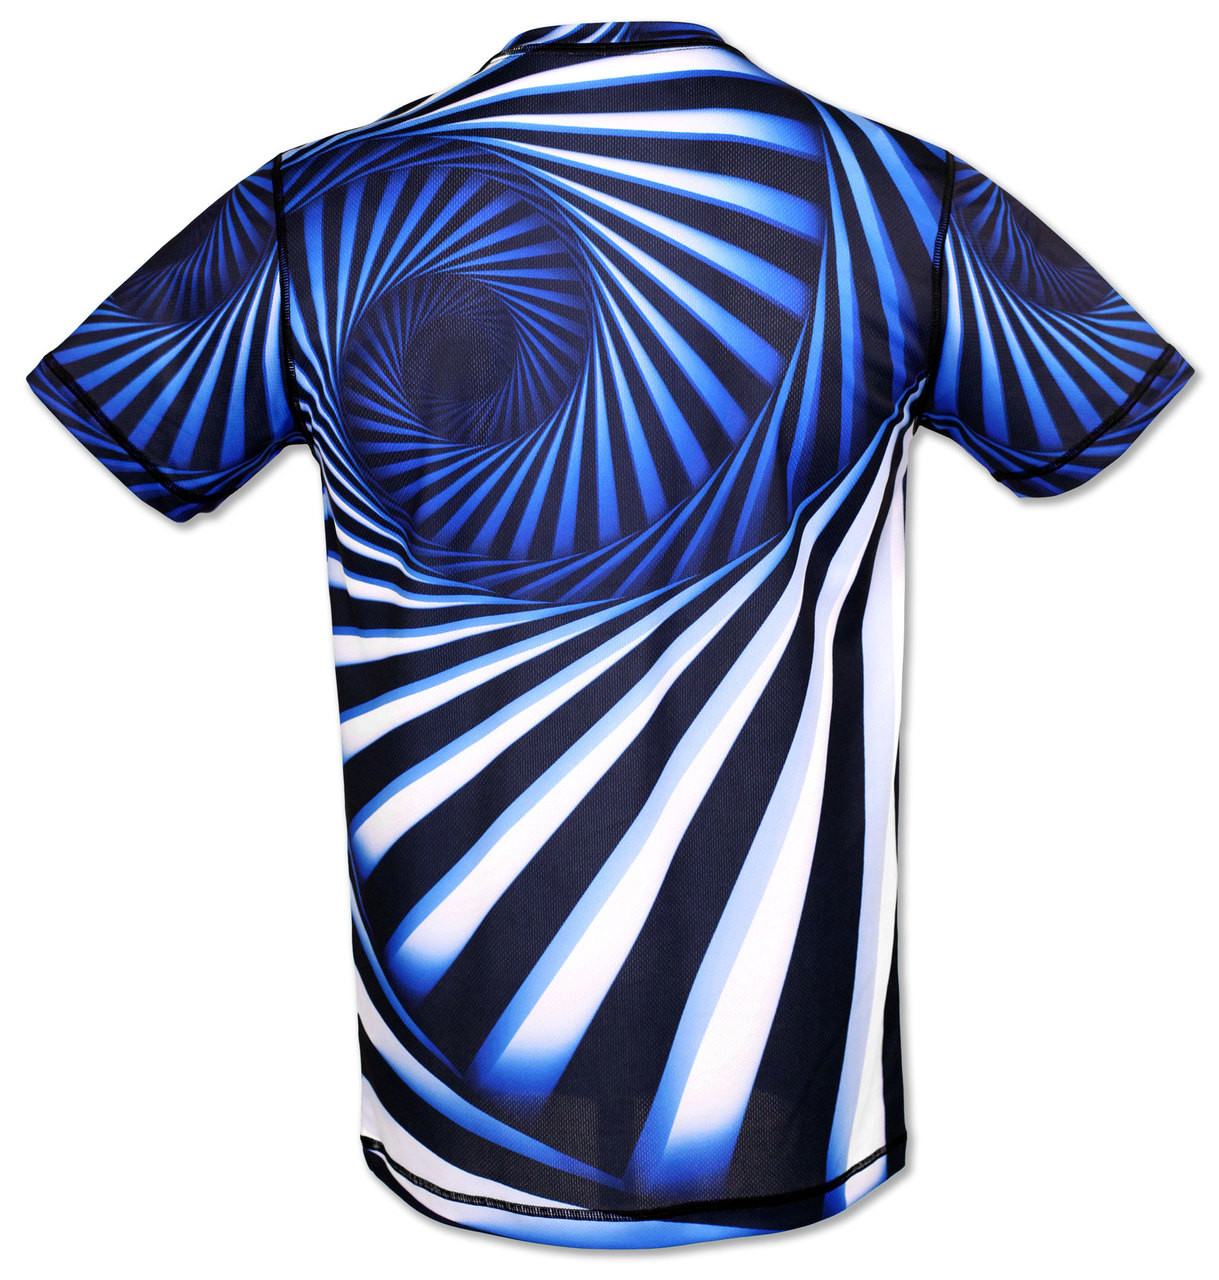 INKnBURN Men's Hypnotic Tech Shirt Back